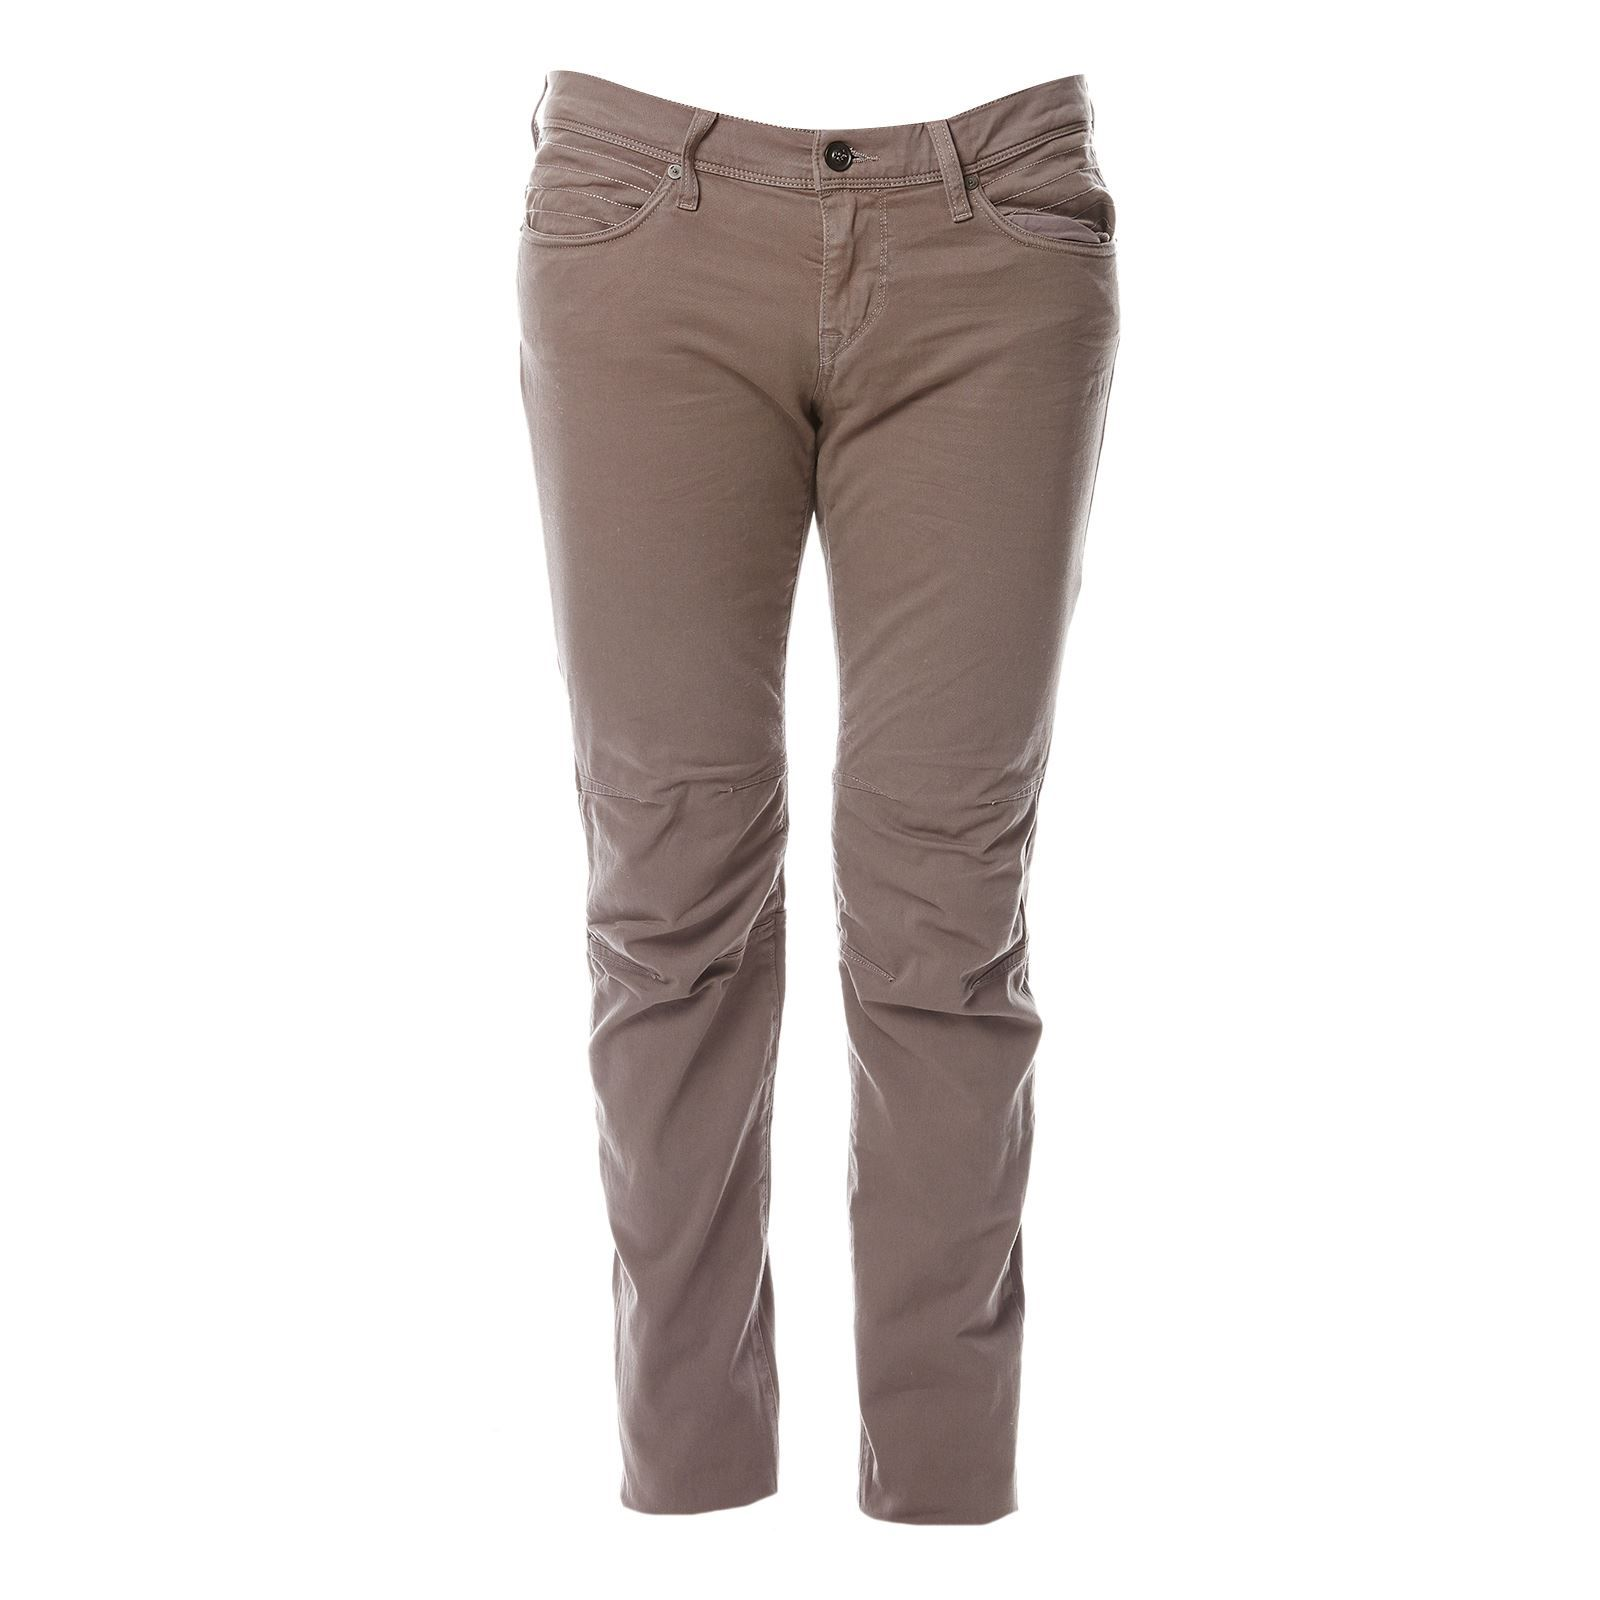 Meltin Pot Meler  Pantalon  Anthracite